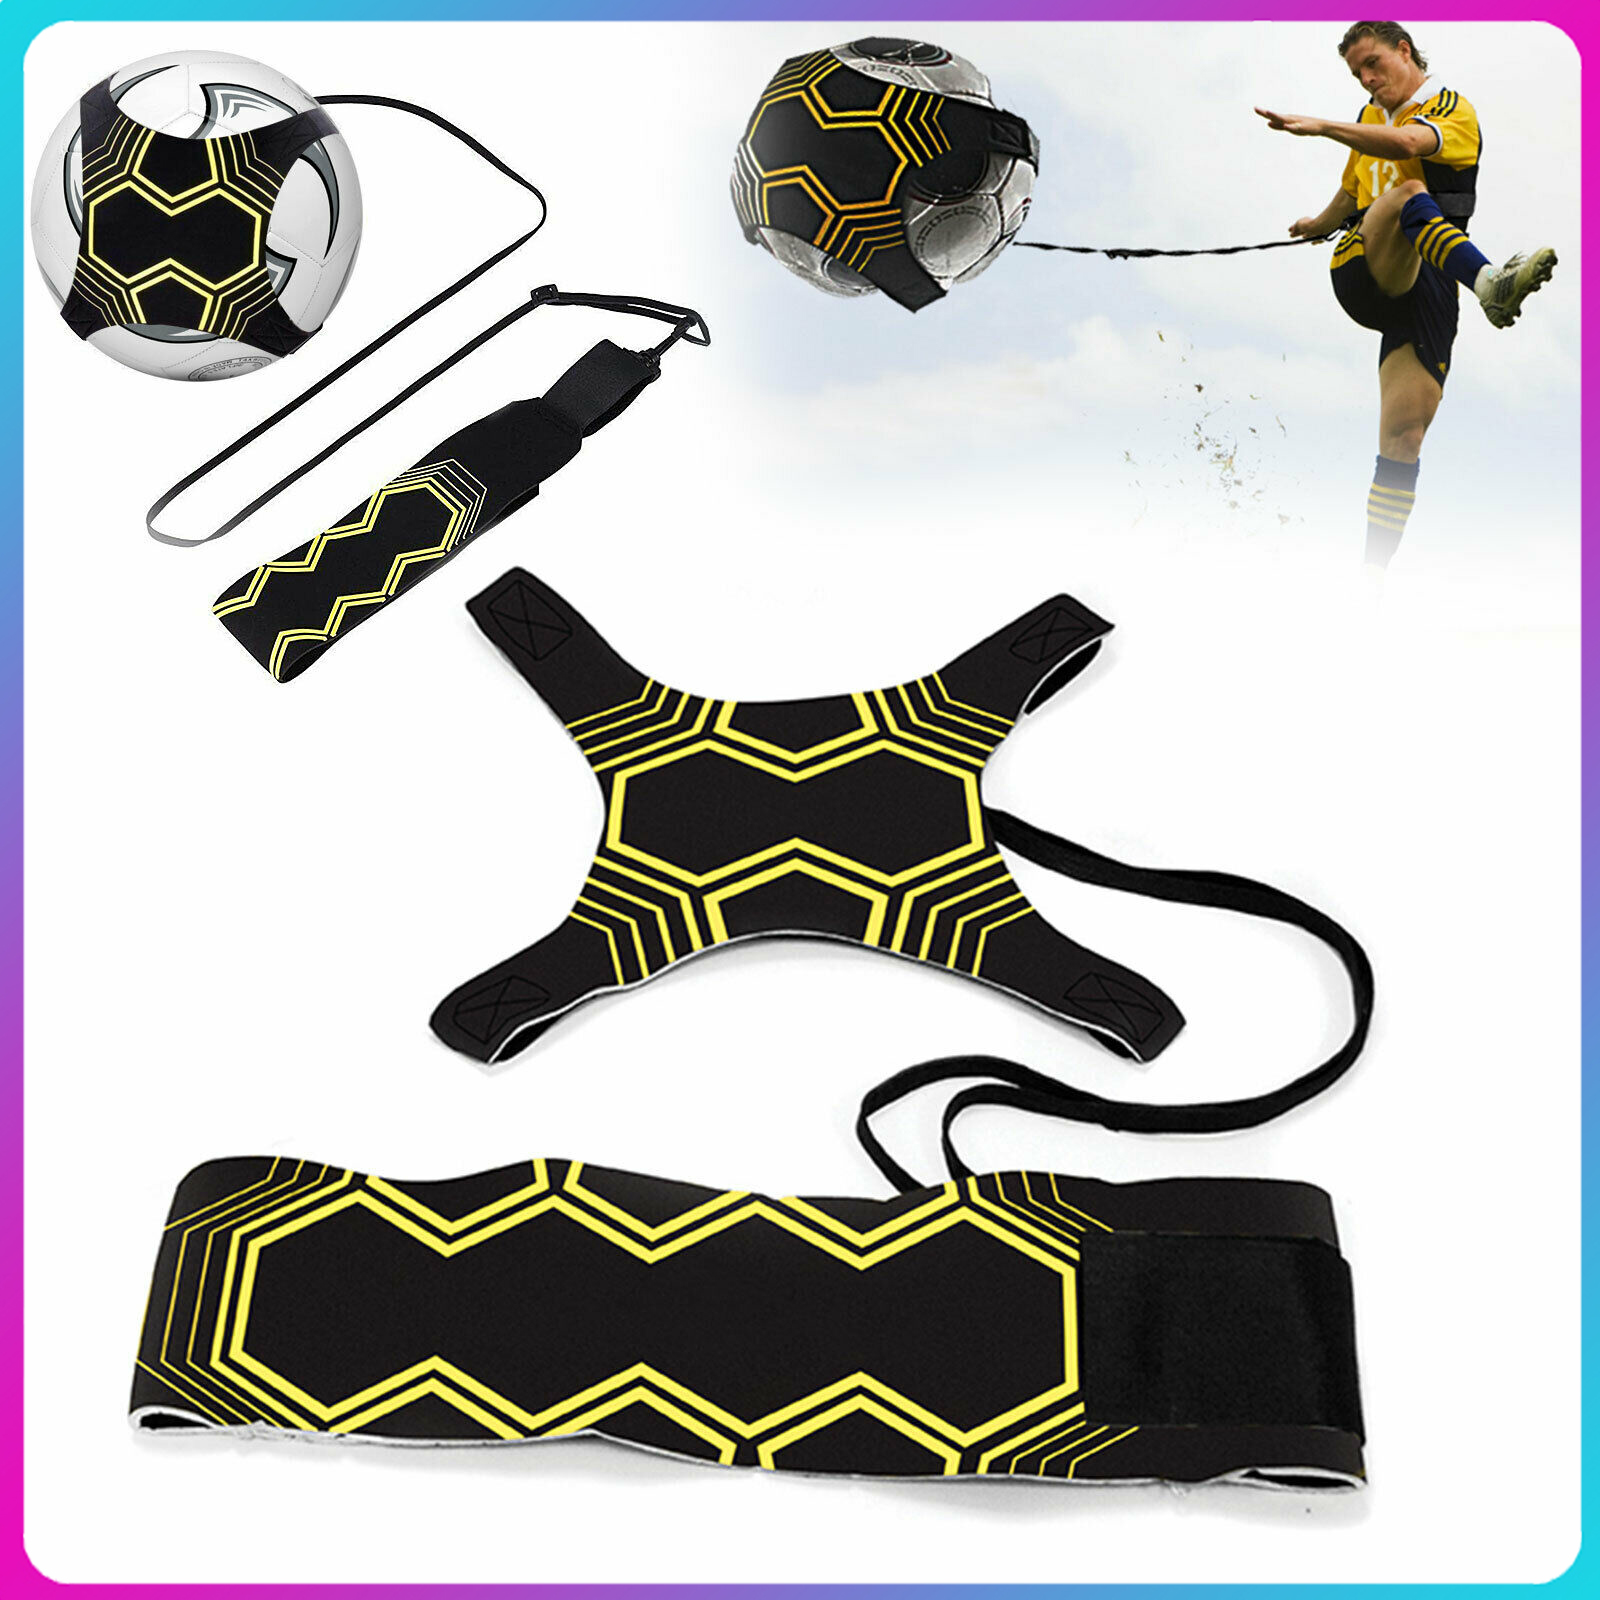 Soccer Trainer Football Kick Throw Solo Practice Training Aid Control Skills Adjustable Equipment Ball Bags Gift